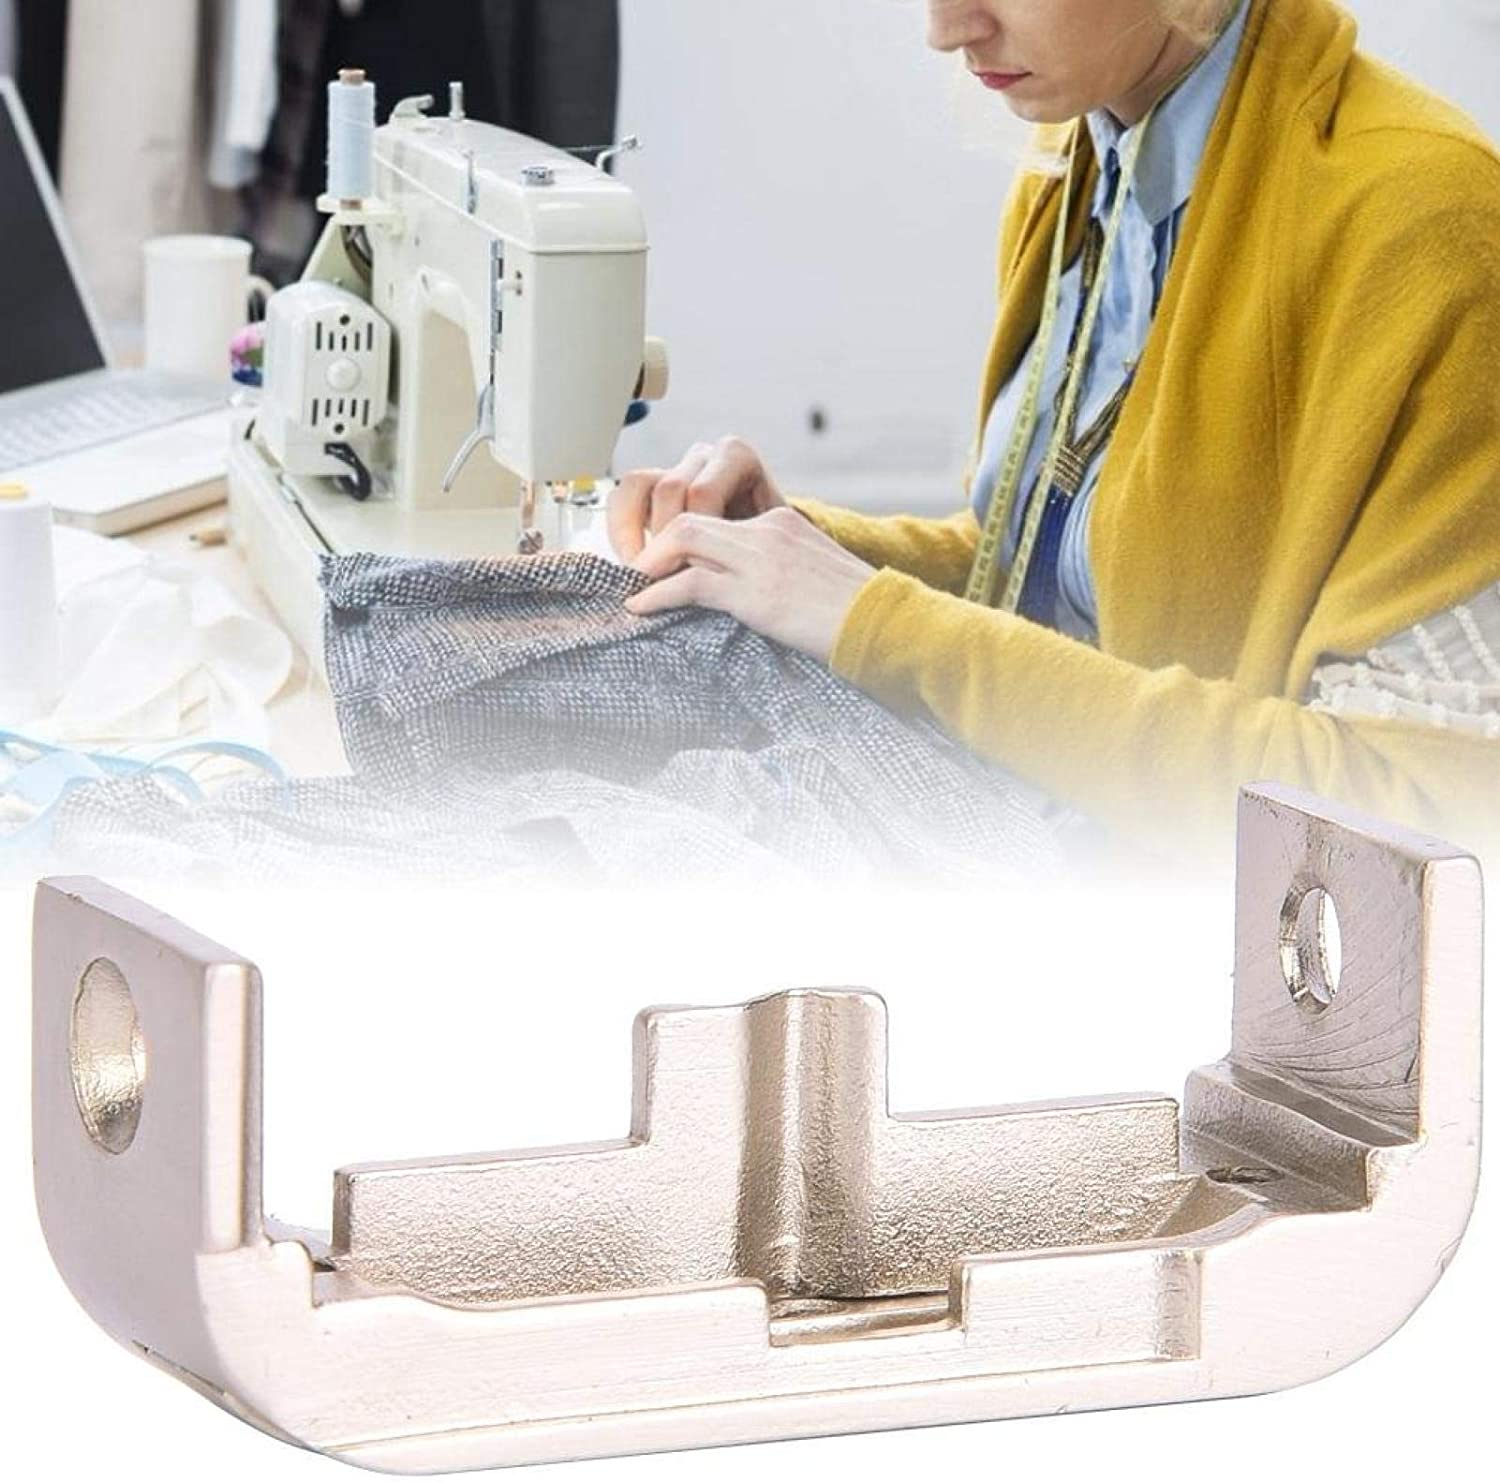 Smooth Quality inspection Surface Needle Plate Machine Sturdy Sewing Daily bargain sale